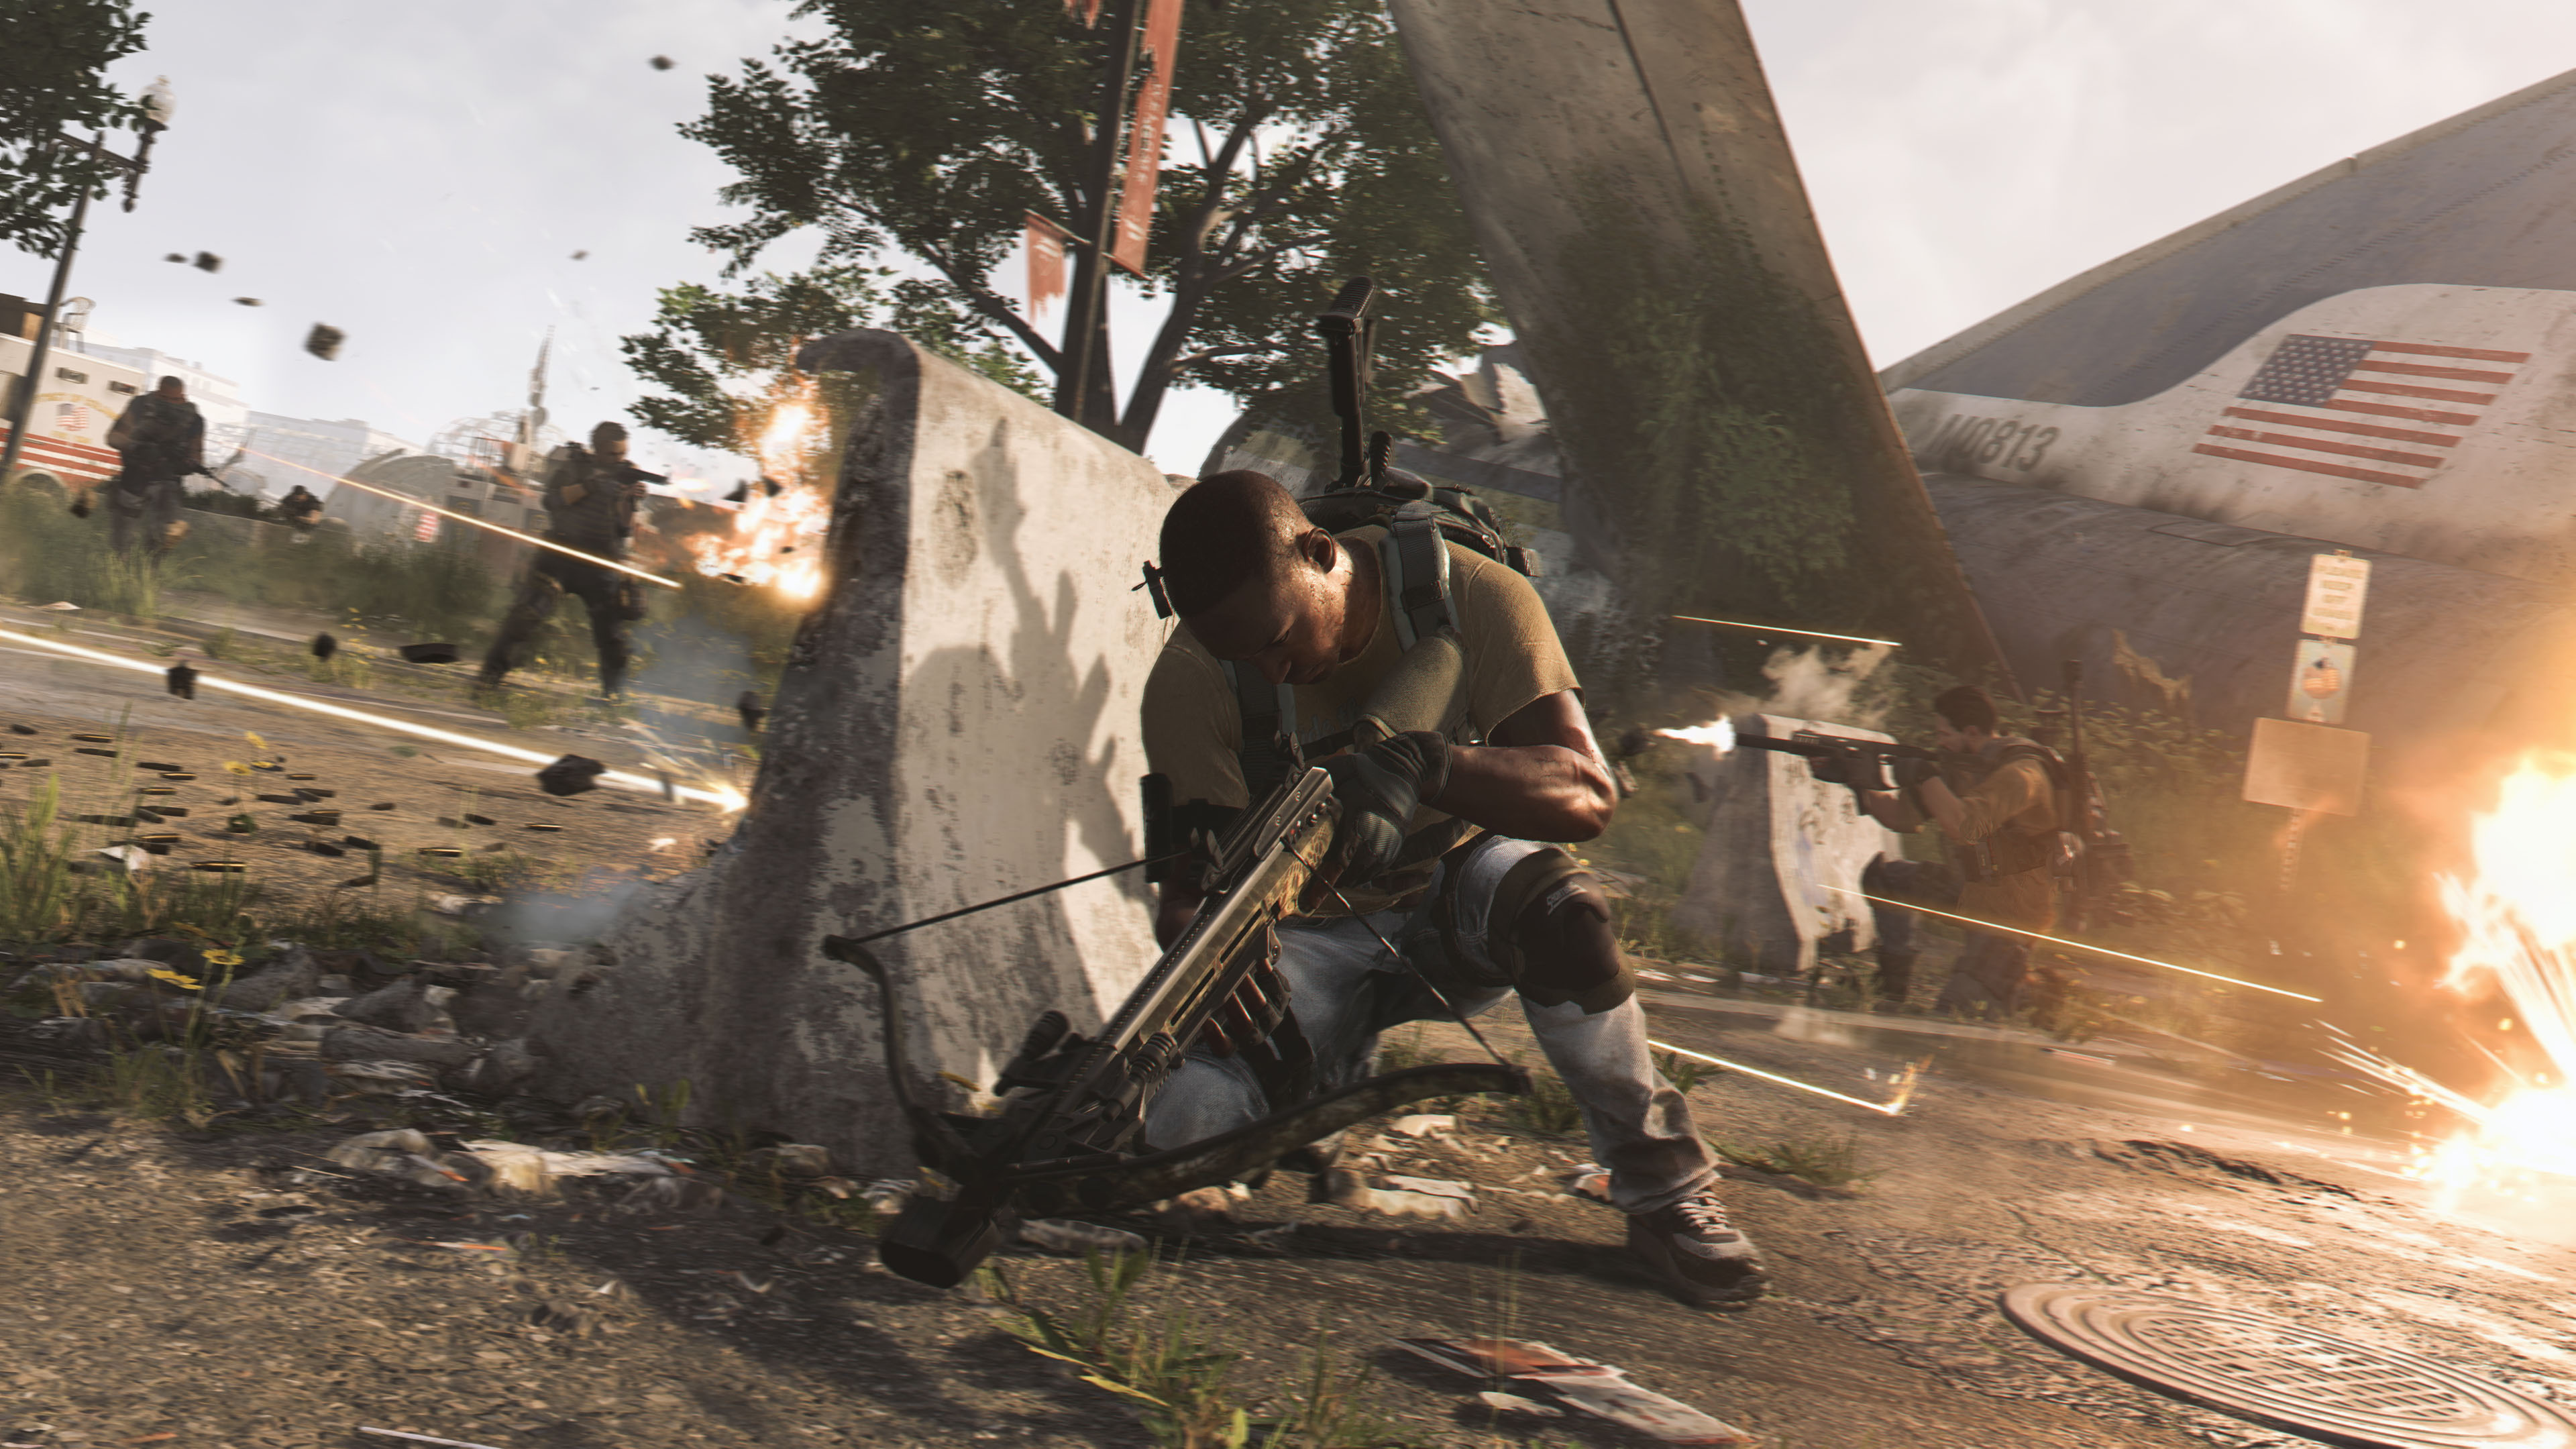 The Division 2 open beta begins on March 1